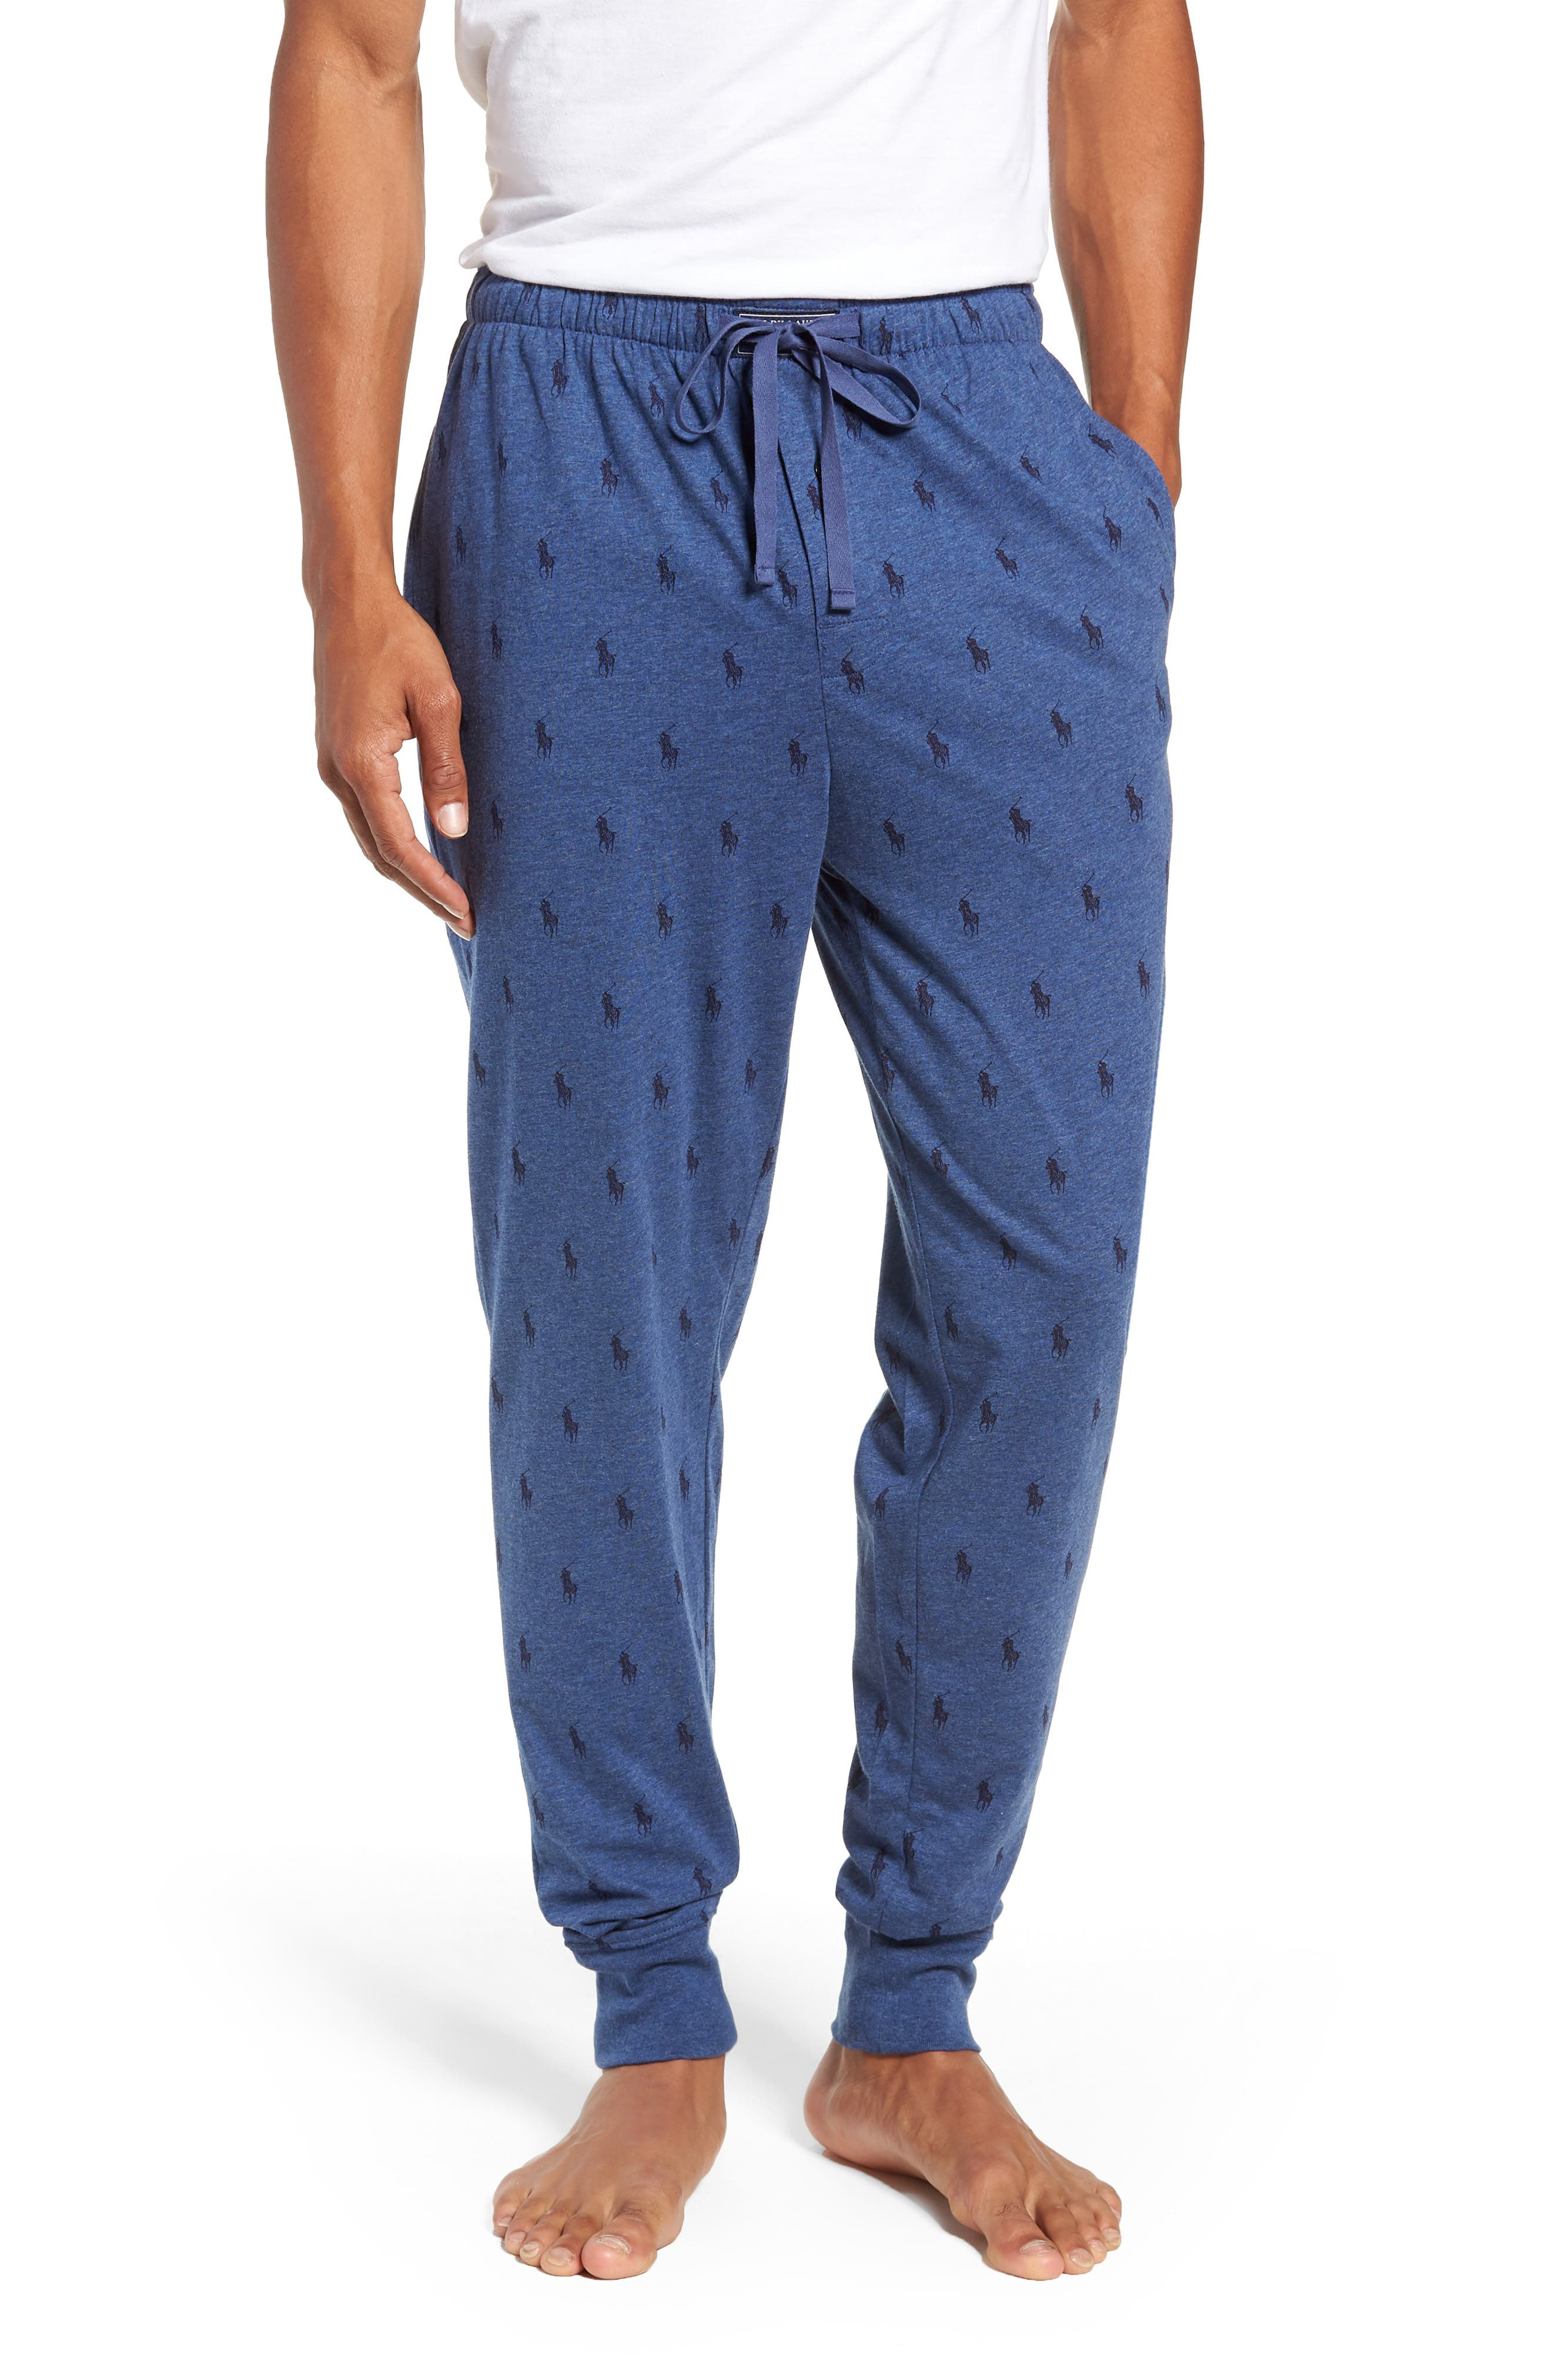 Cotton Pajama Pants,                             Main thumbnail 1, color,                             403